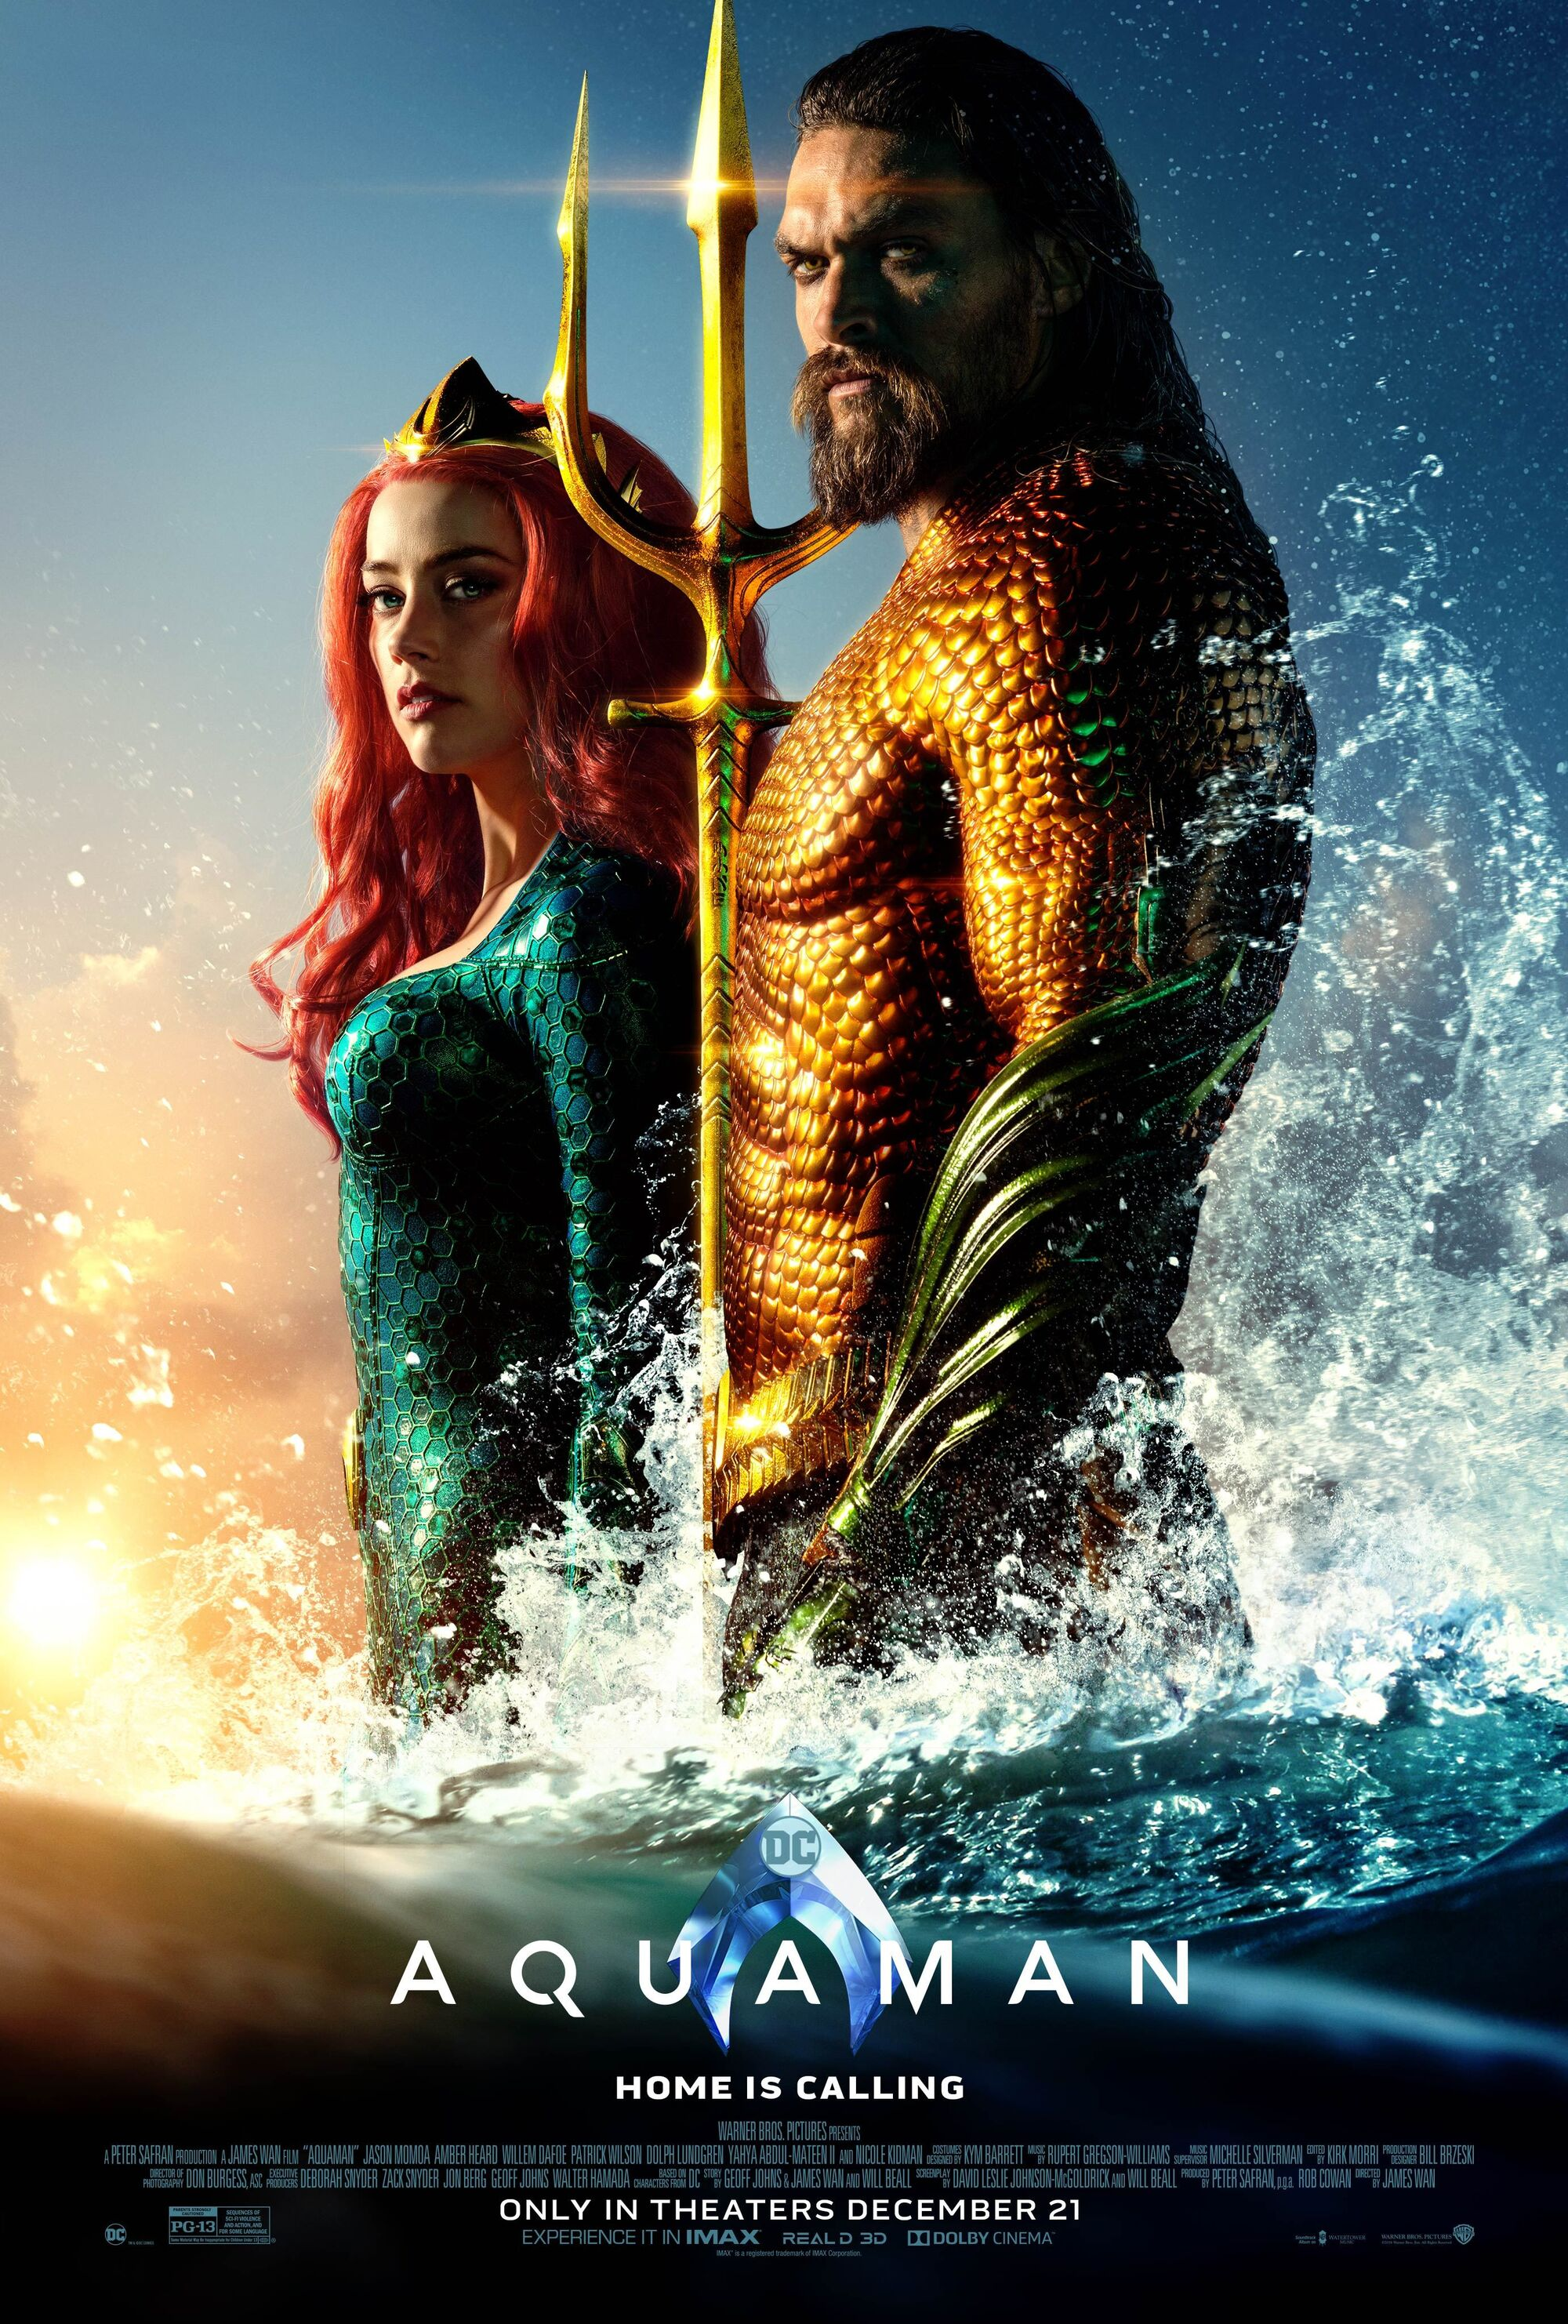 Aquaman (film) | DC Extended Universe Wiki | FANDOM powered by Wikia